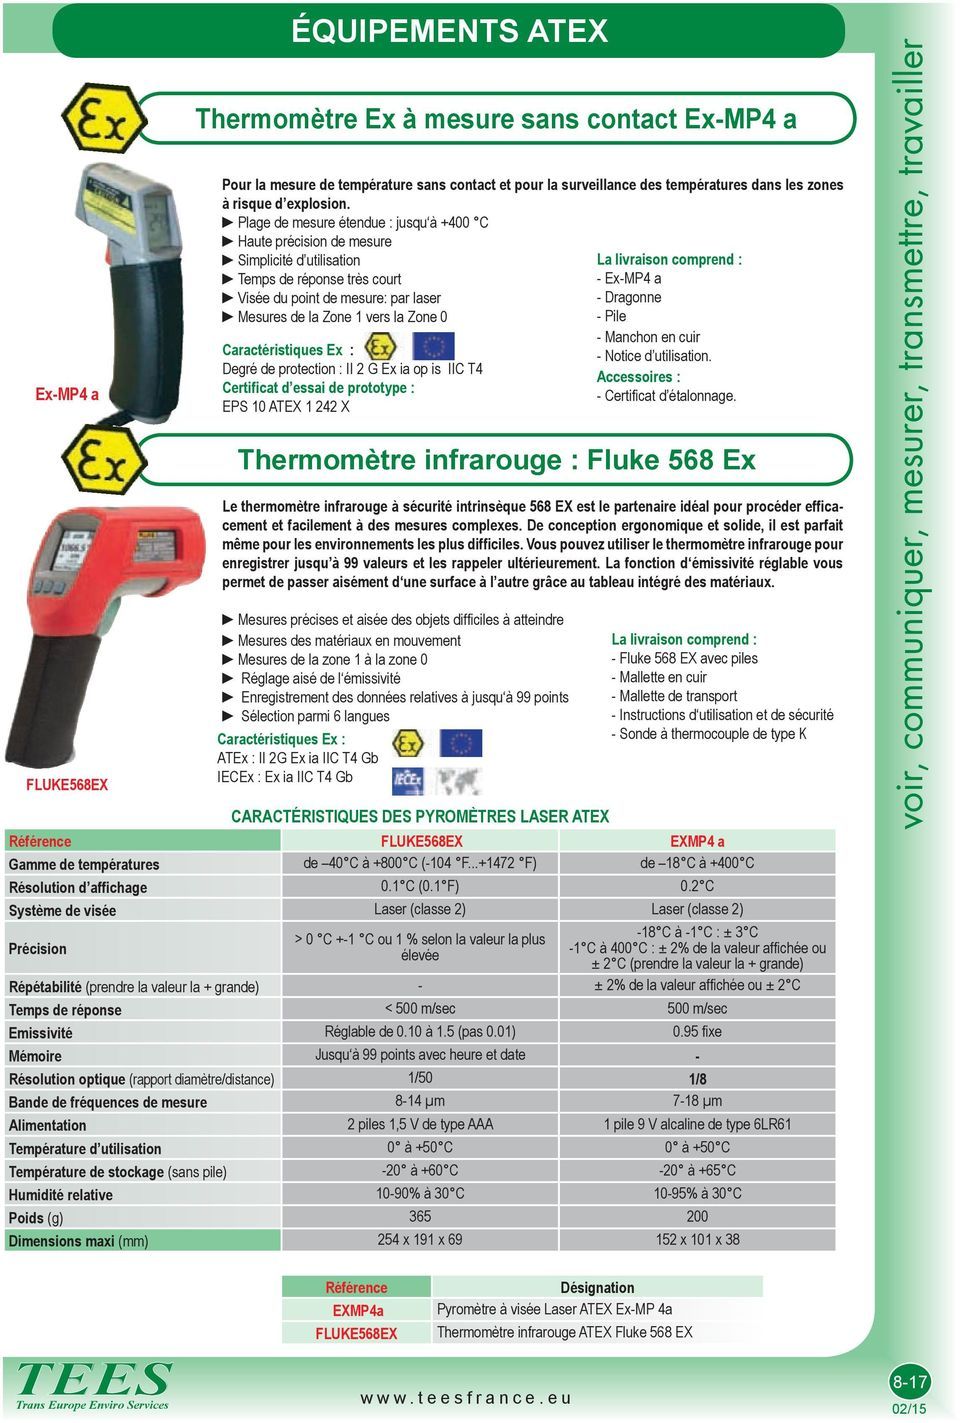 Ex : Degré de protection : II 2 G Ex i op is IIC T4 Certifict d essi de prototype : EPS 10 ATEX 1 242 X Thermomètre infrrouge : Fluke 568 Ex e thermomètre infrrouge à sécurité intrinsèque 568 EX est